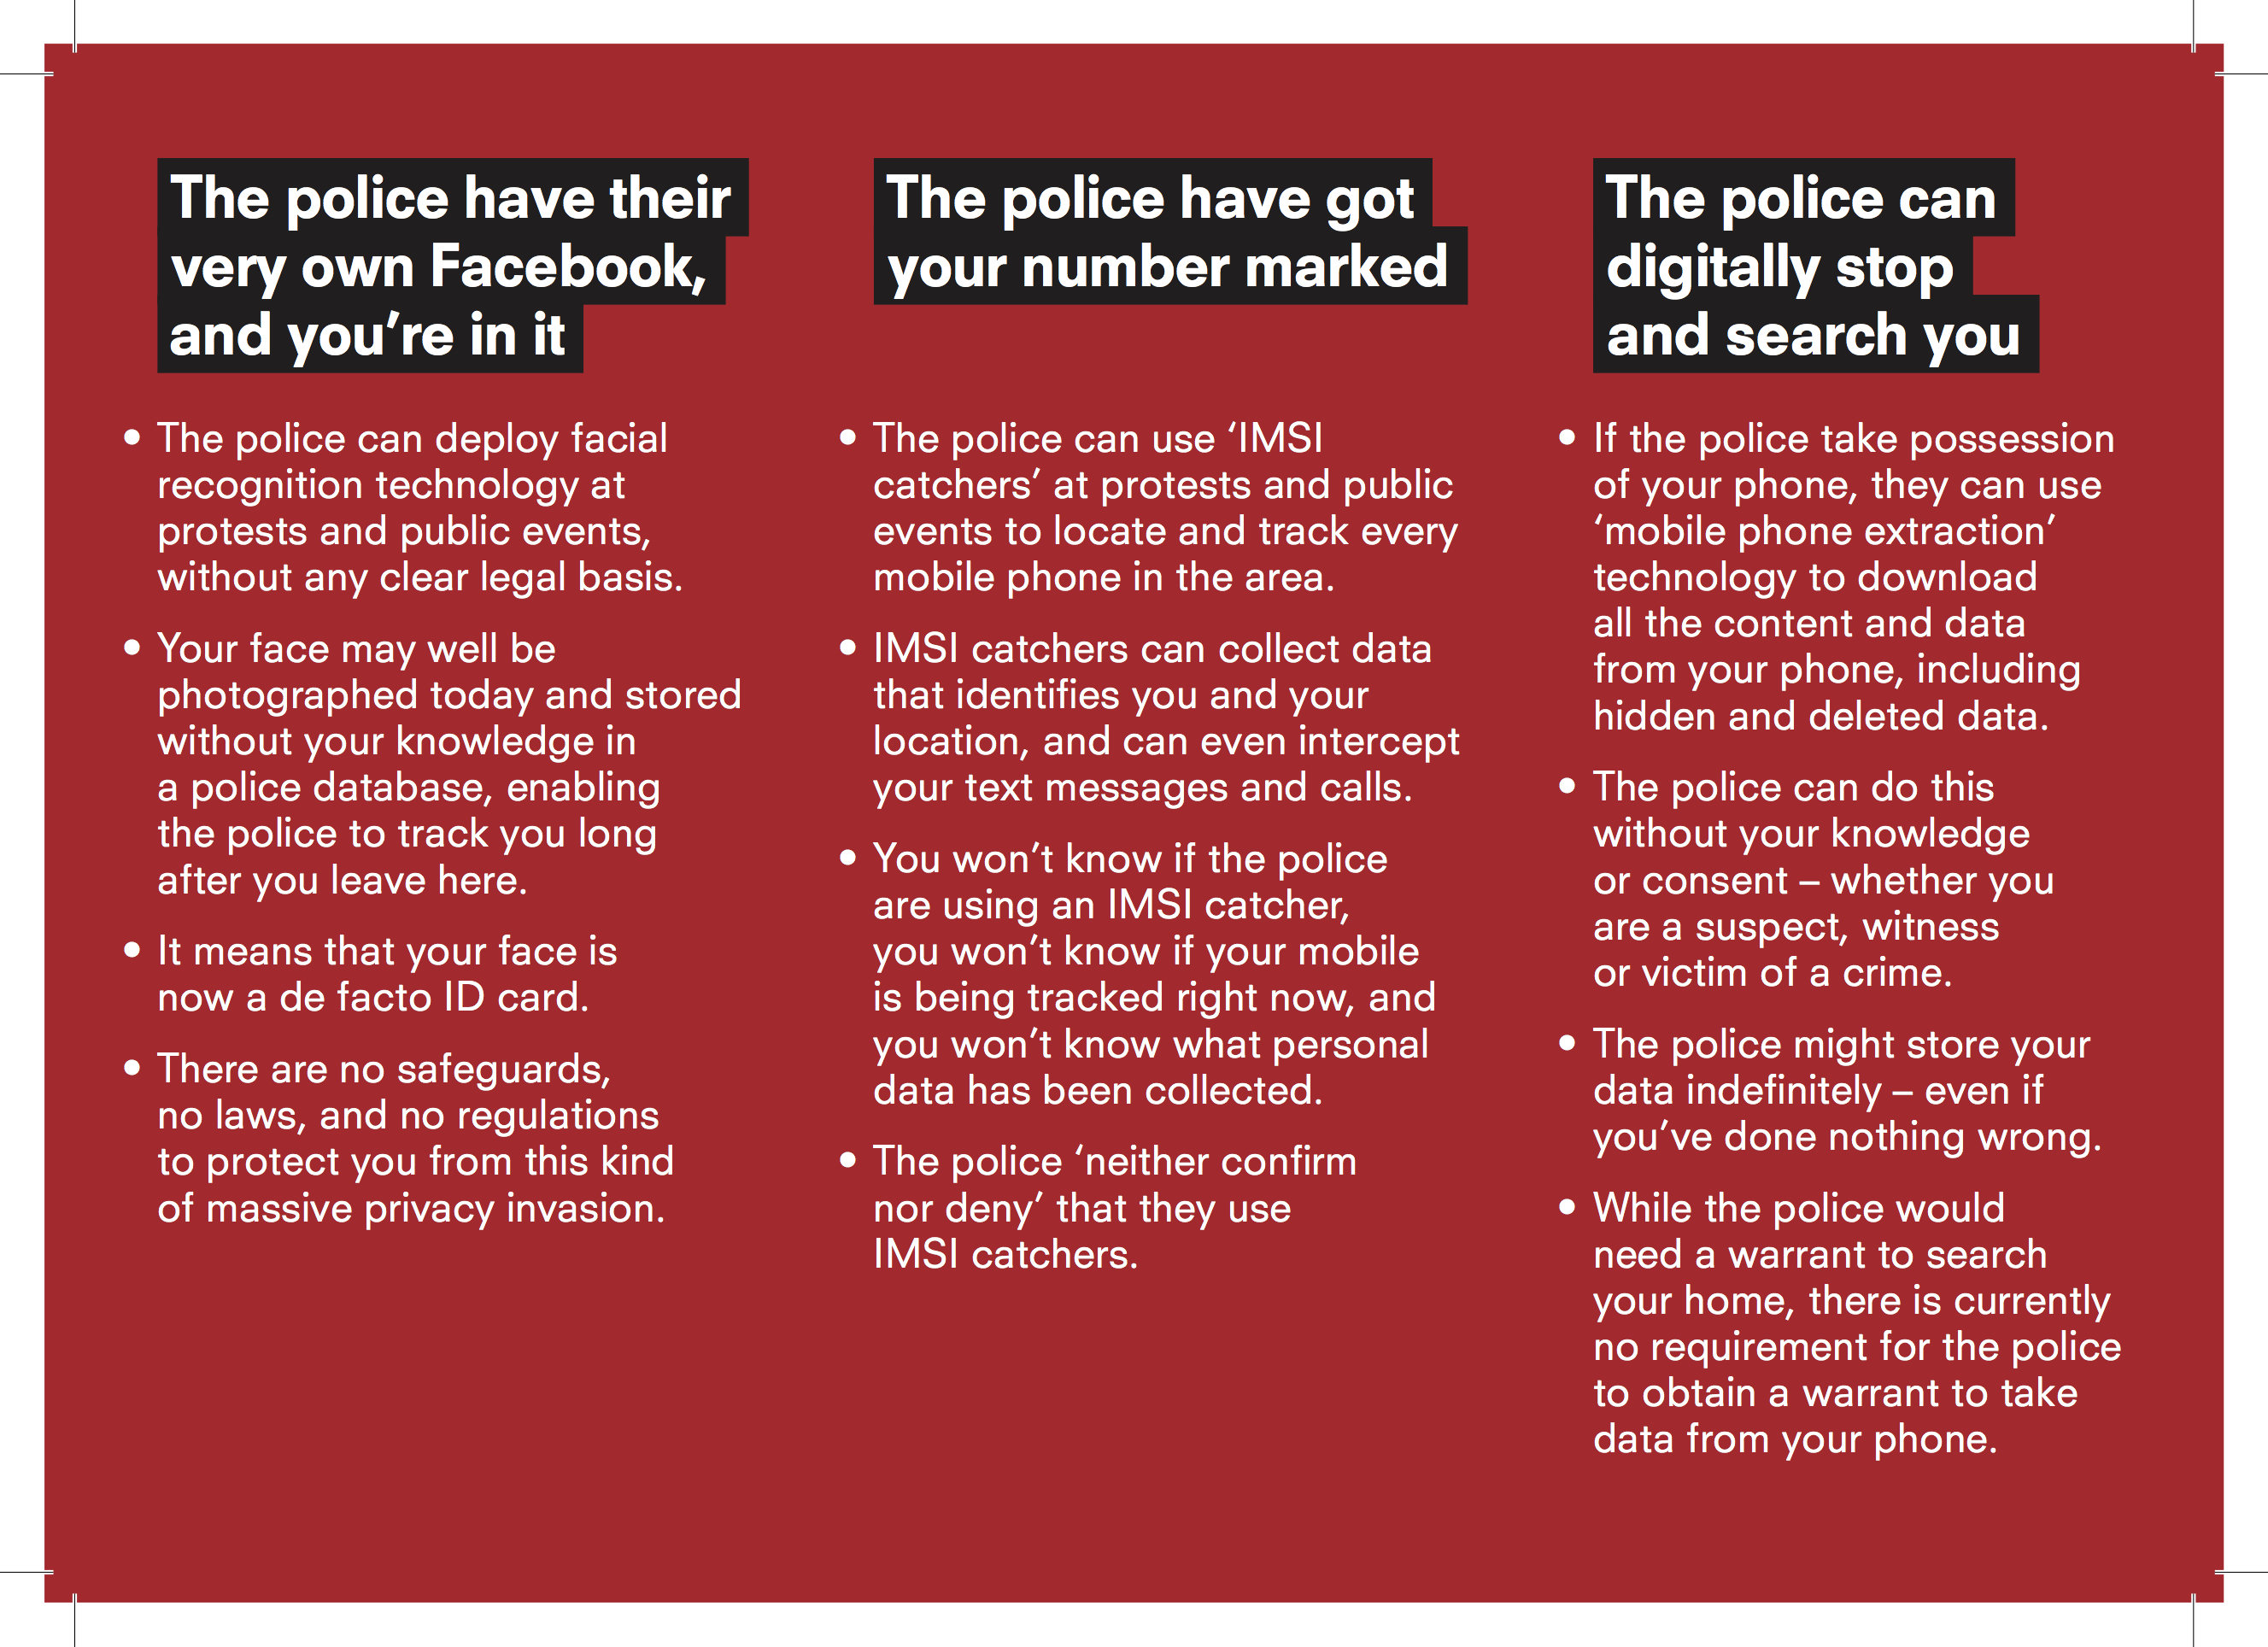 leaflet about police tech being used in public places in the uk